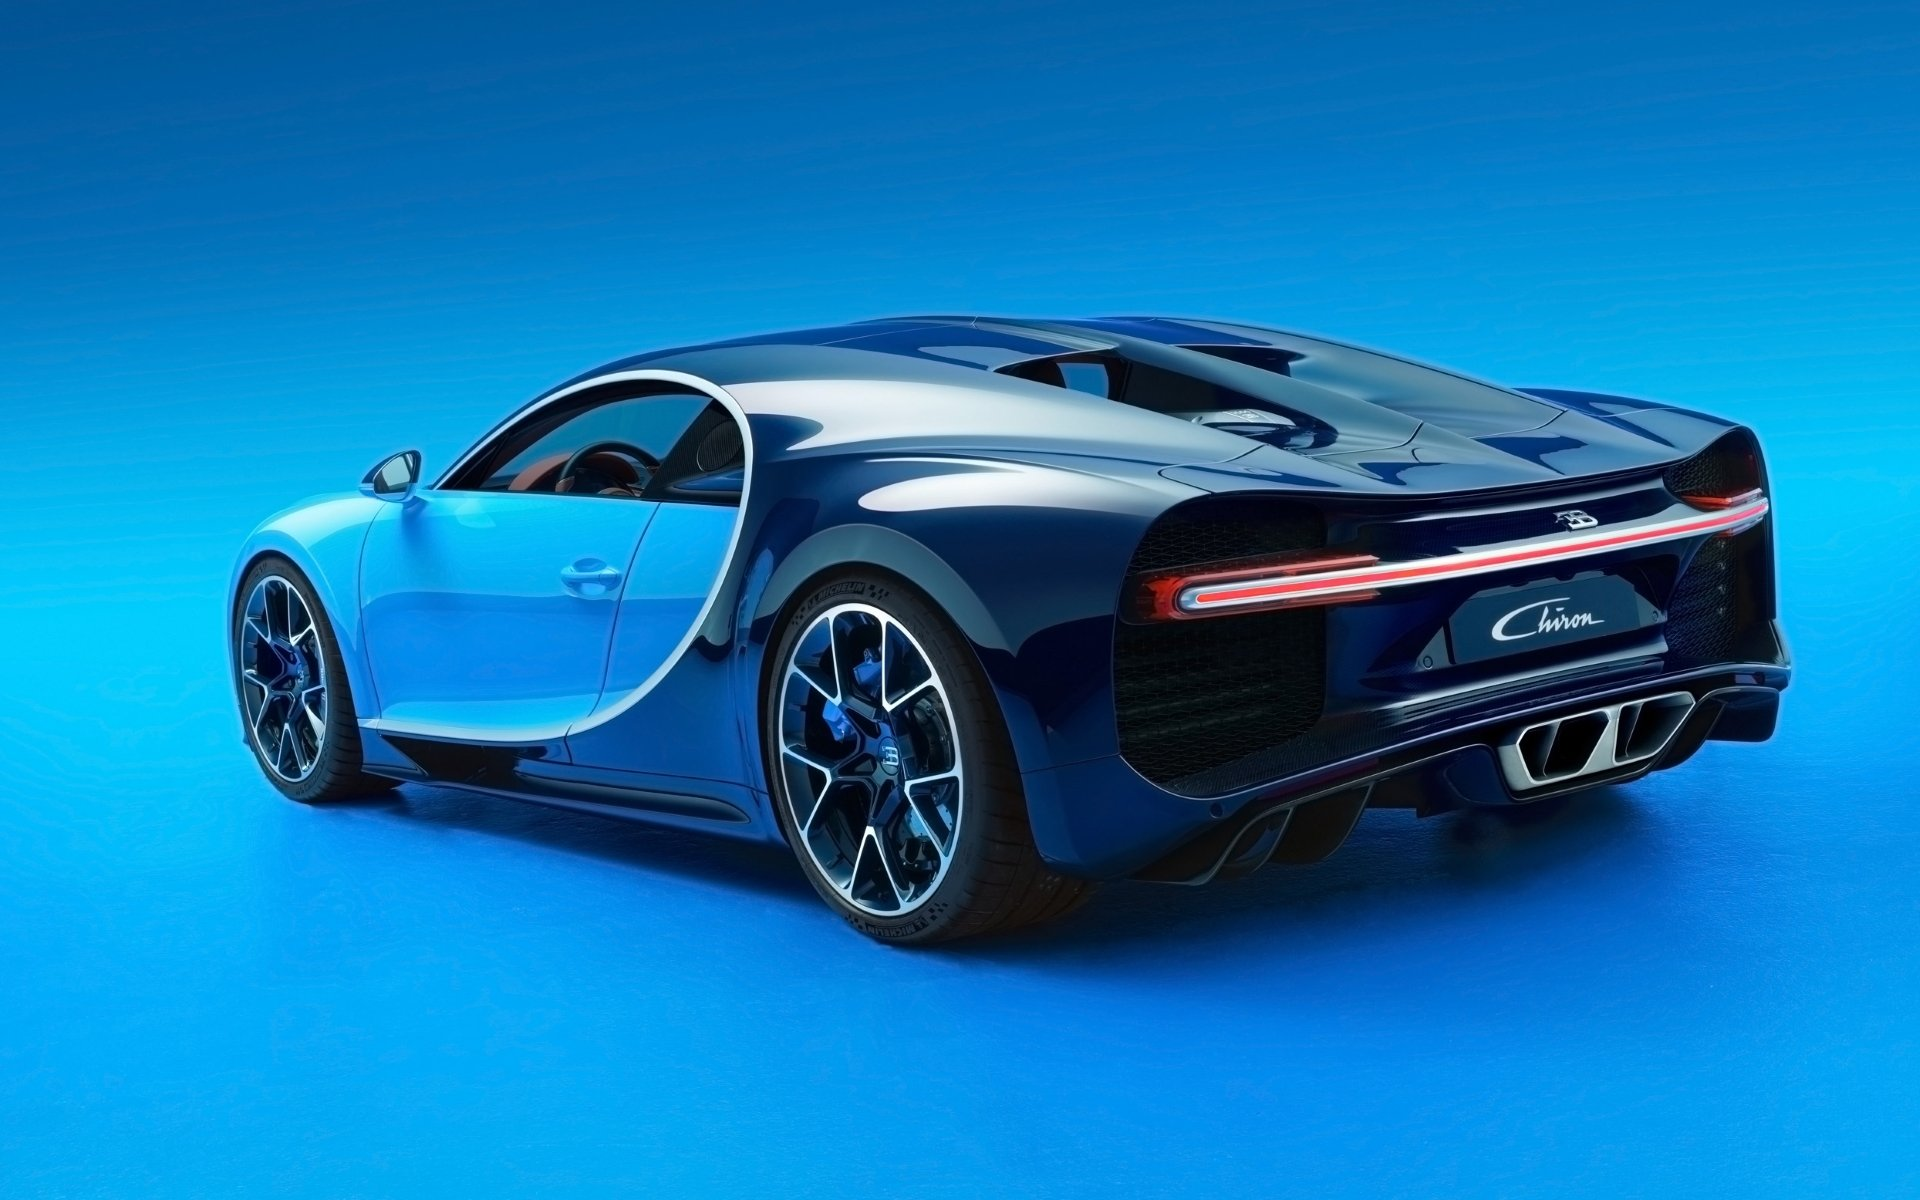 Bugatti Chiron Wallpapers Hd For Desktop Backgrounds